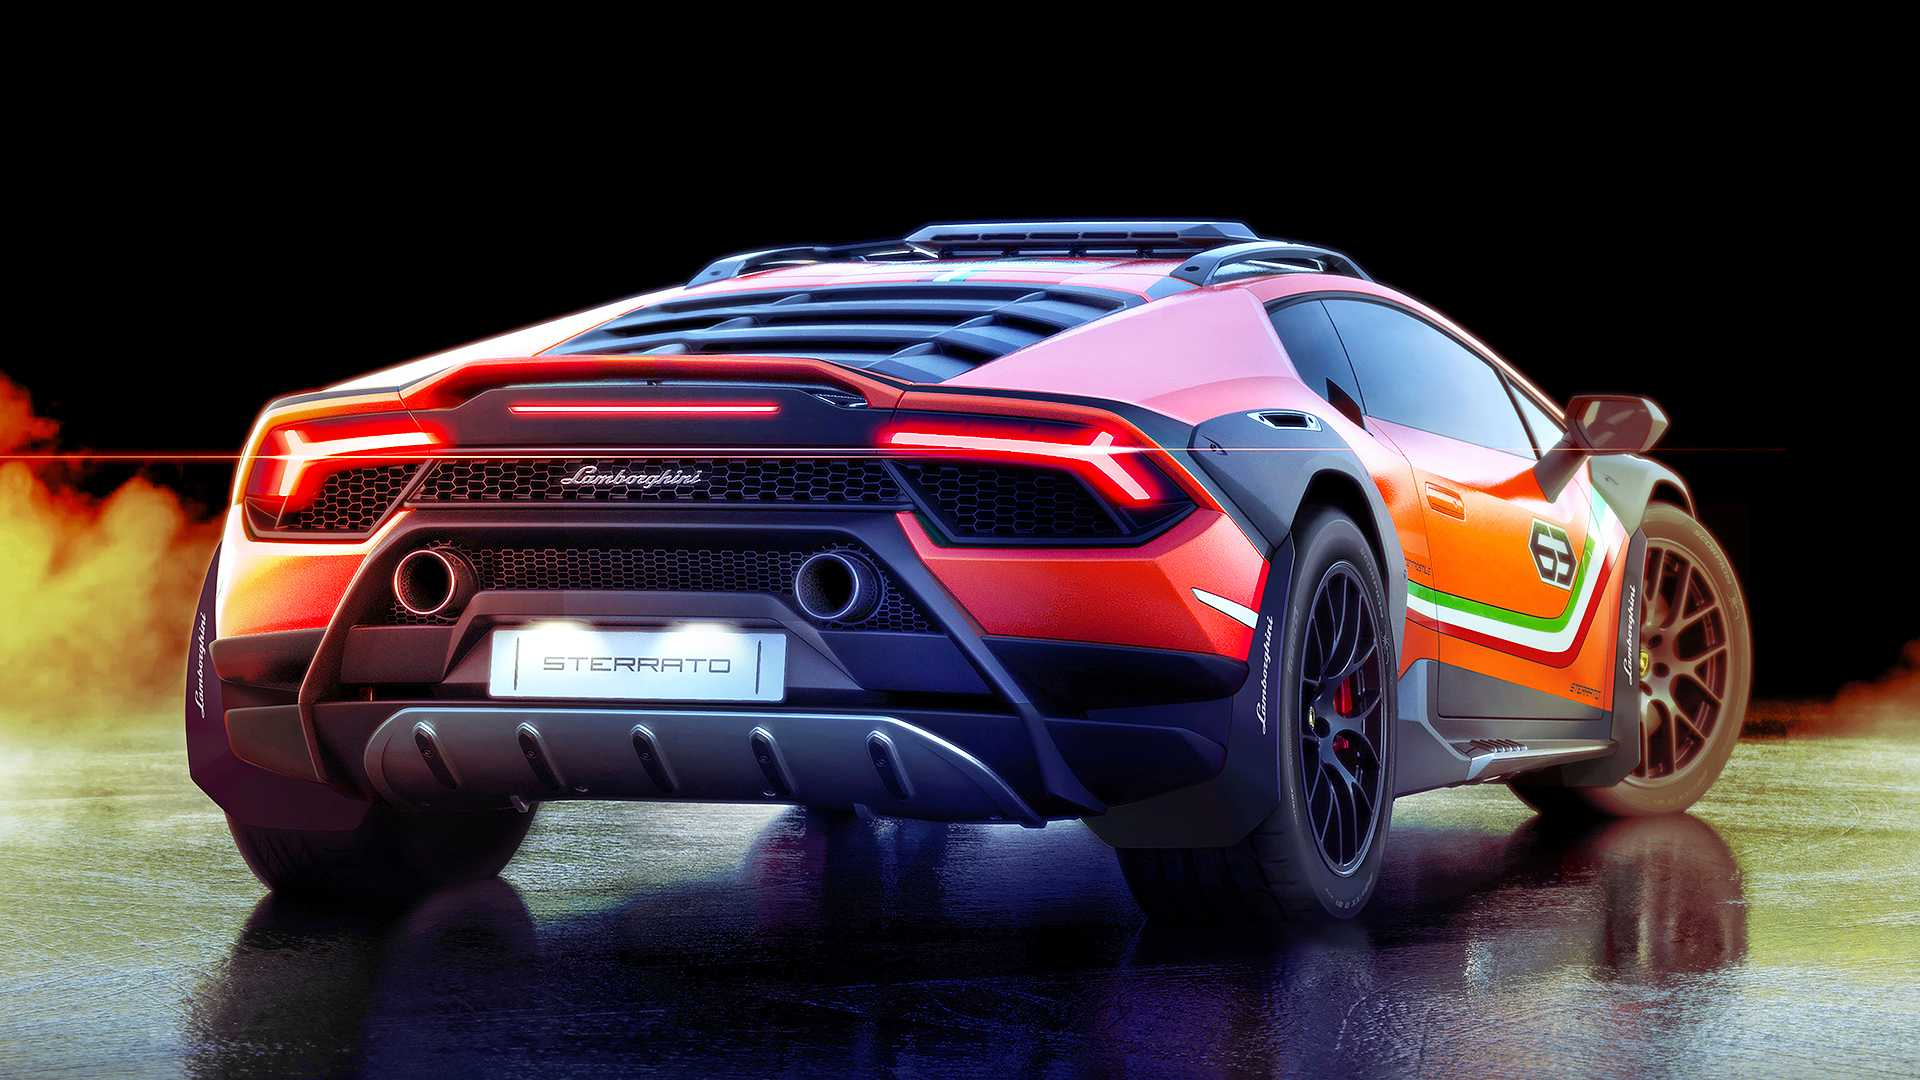 2019 Lamborghini Huracán Sterrato Concept Rear Wallpapers (6)